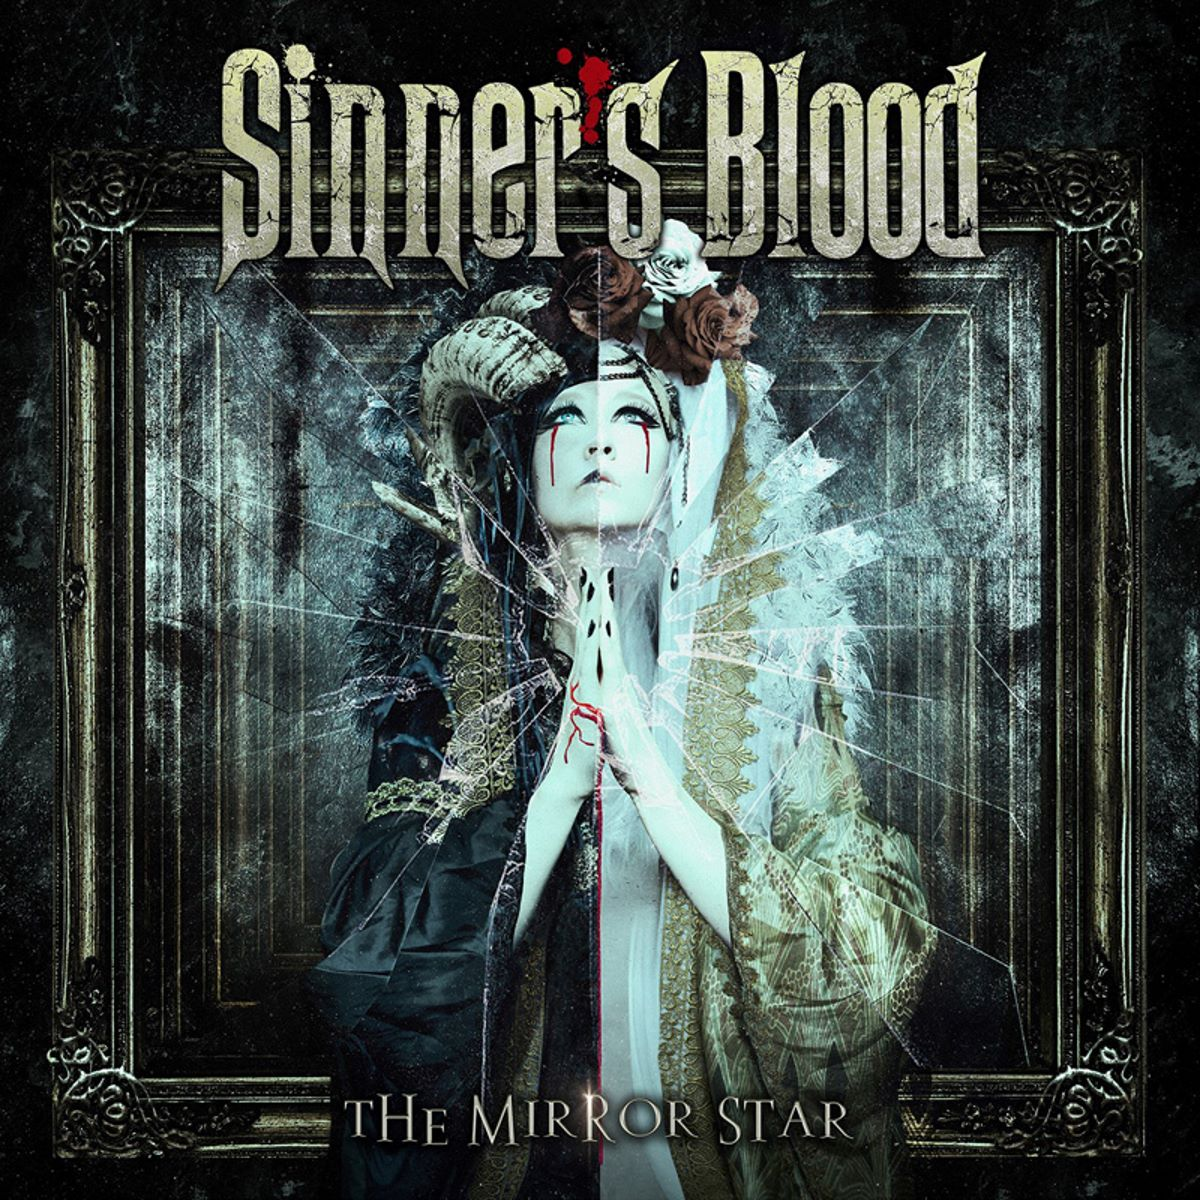 sinners blood - the mirror star - album cover